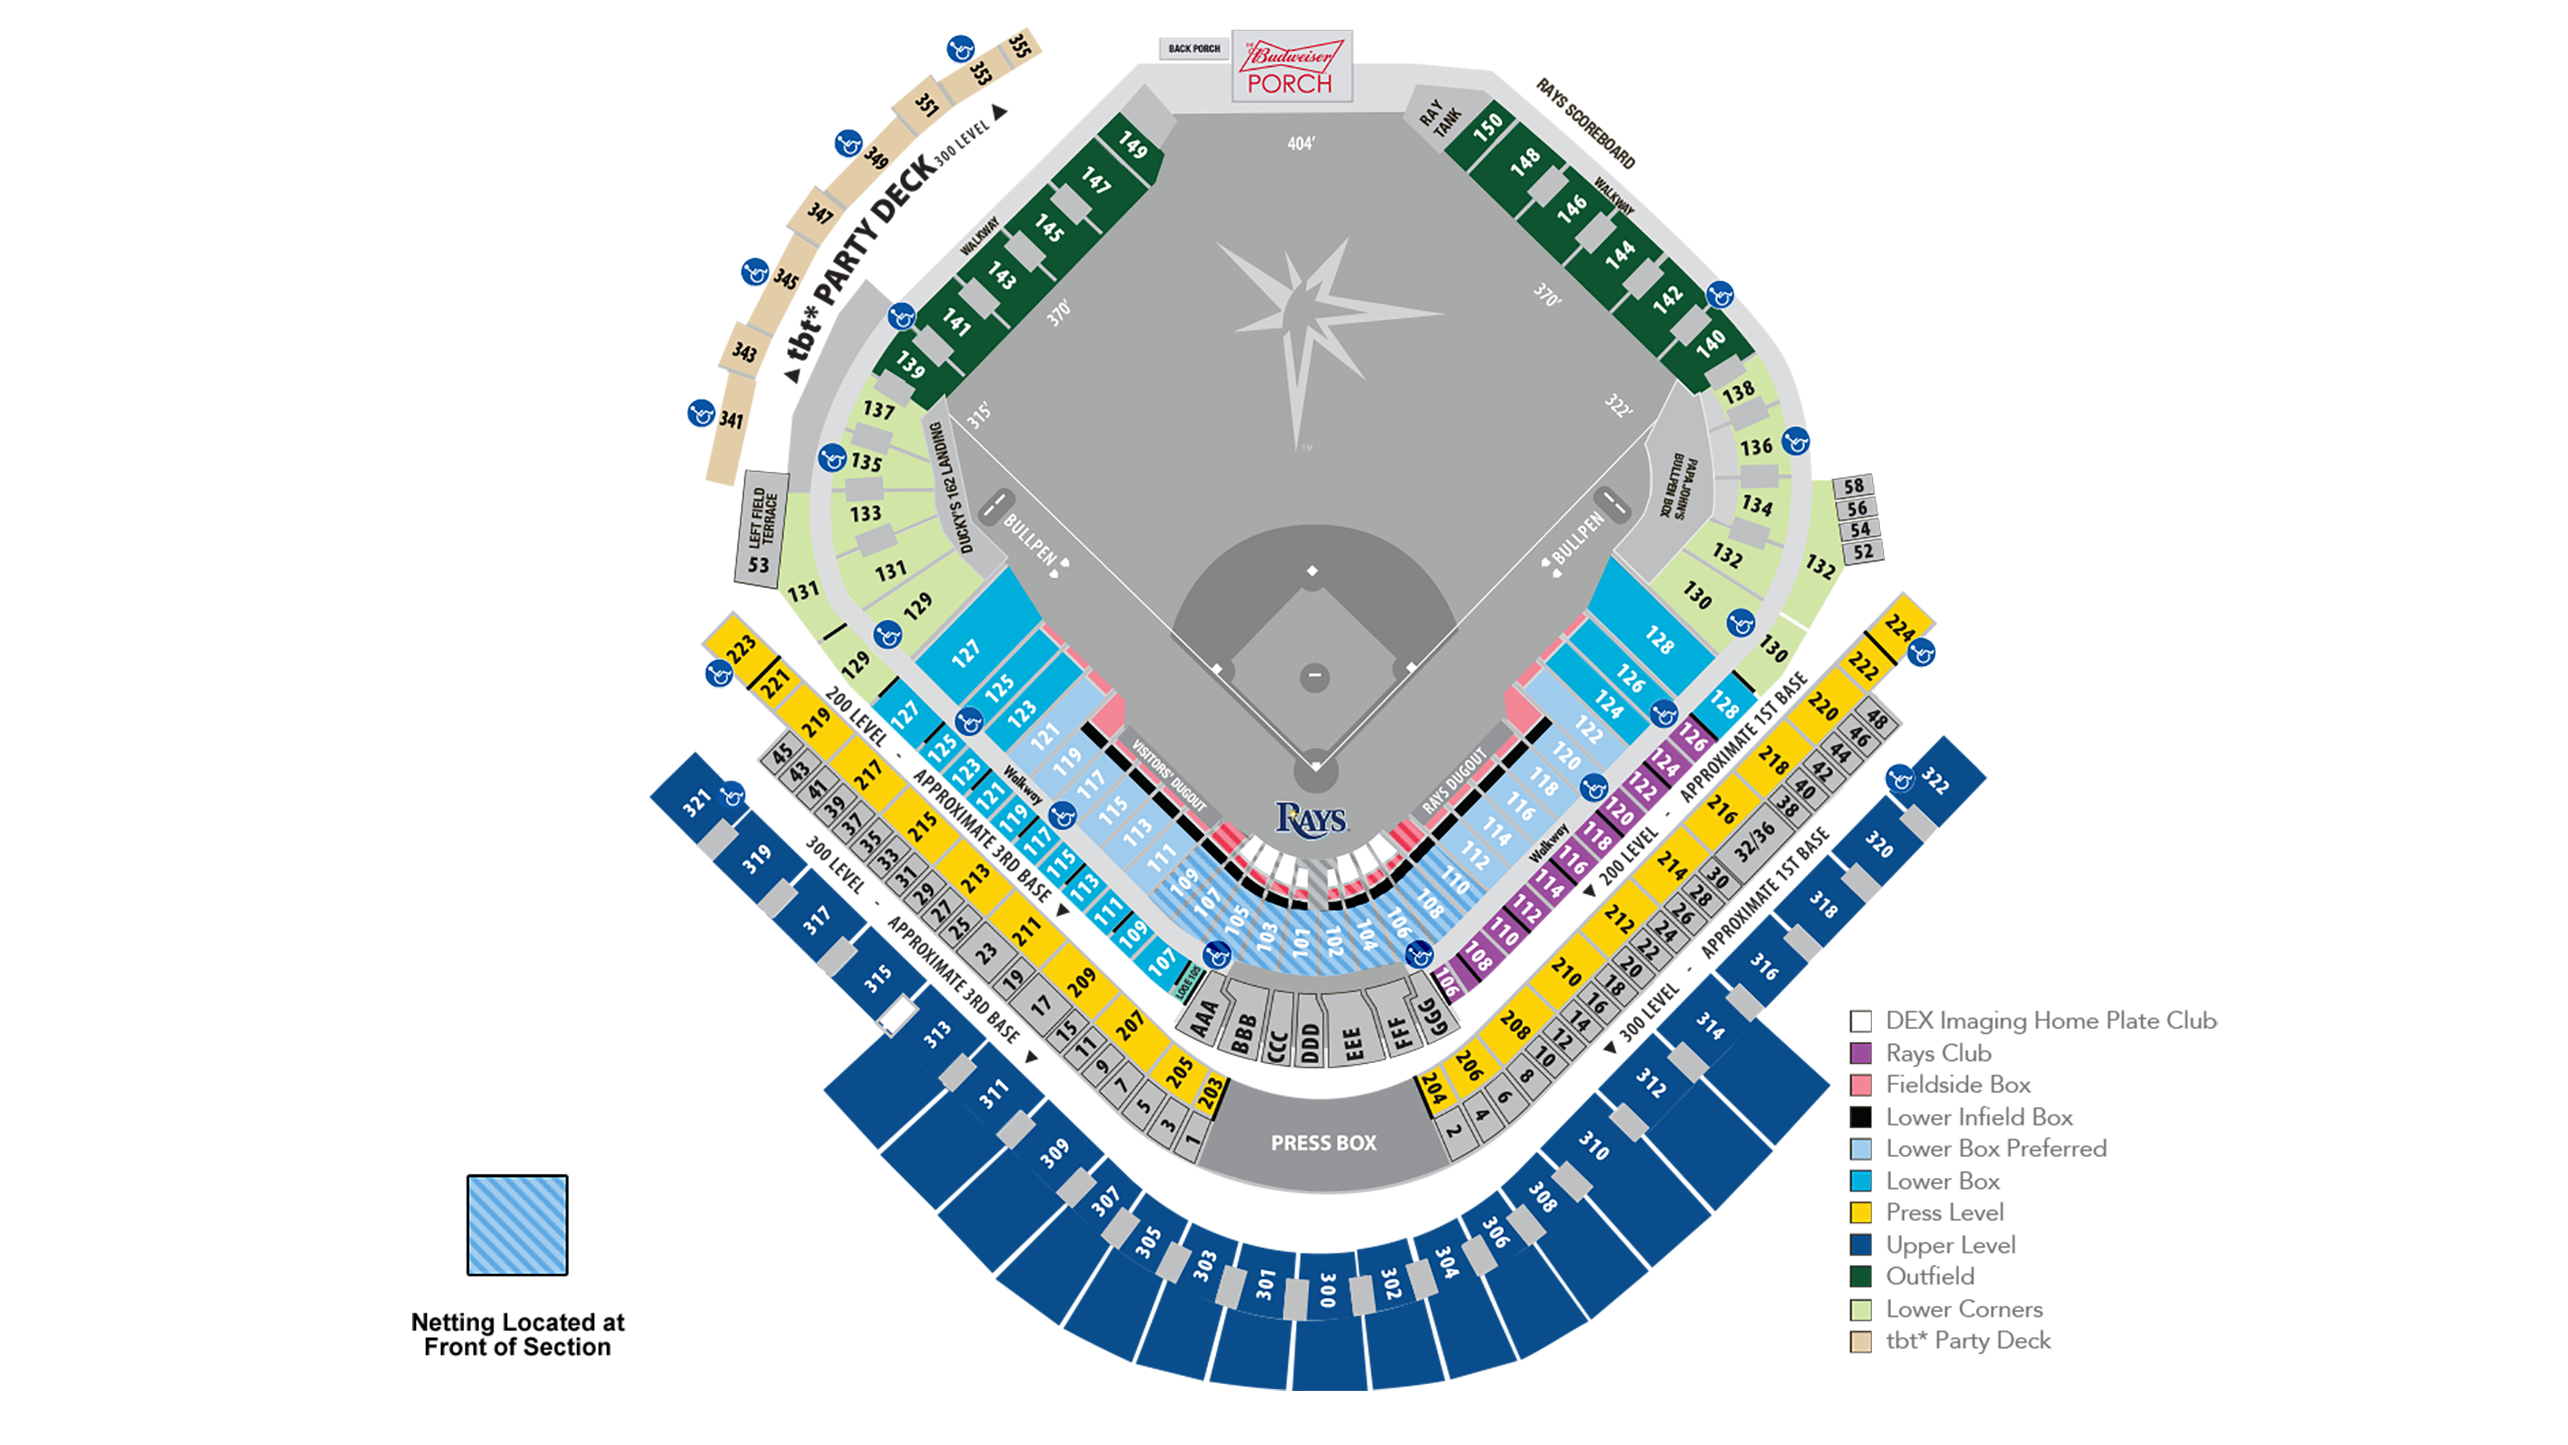 Rays Seating Map Tampa Bay Rays